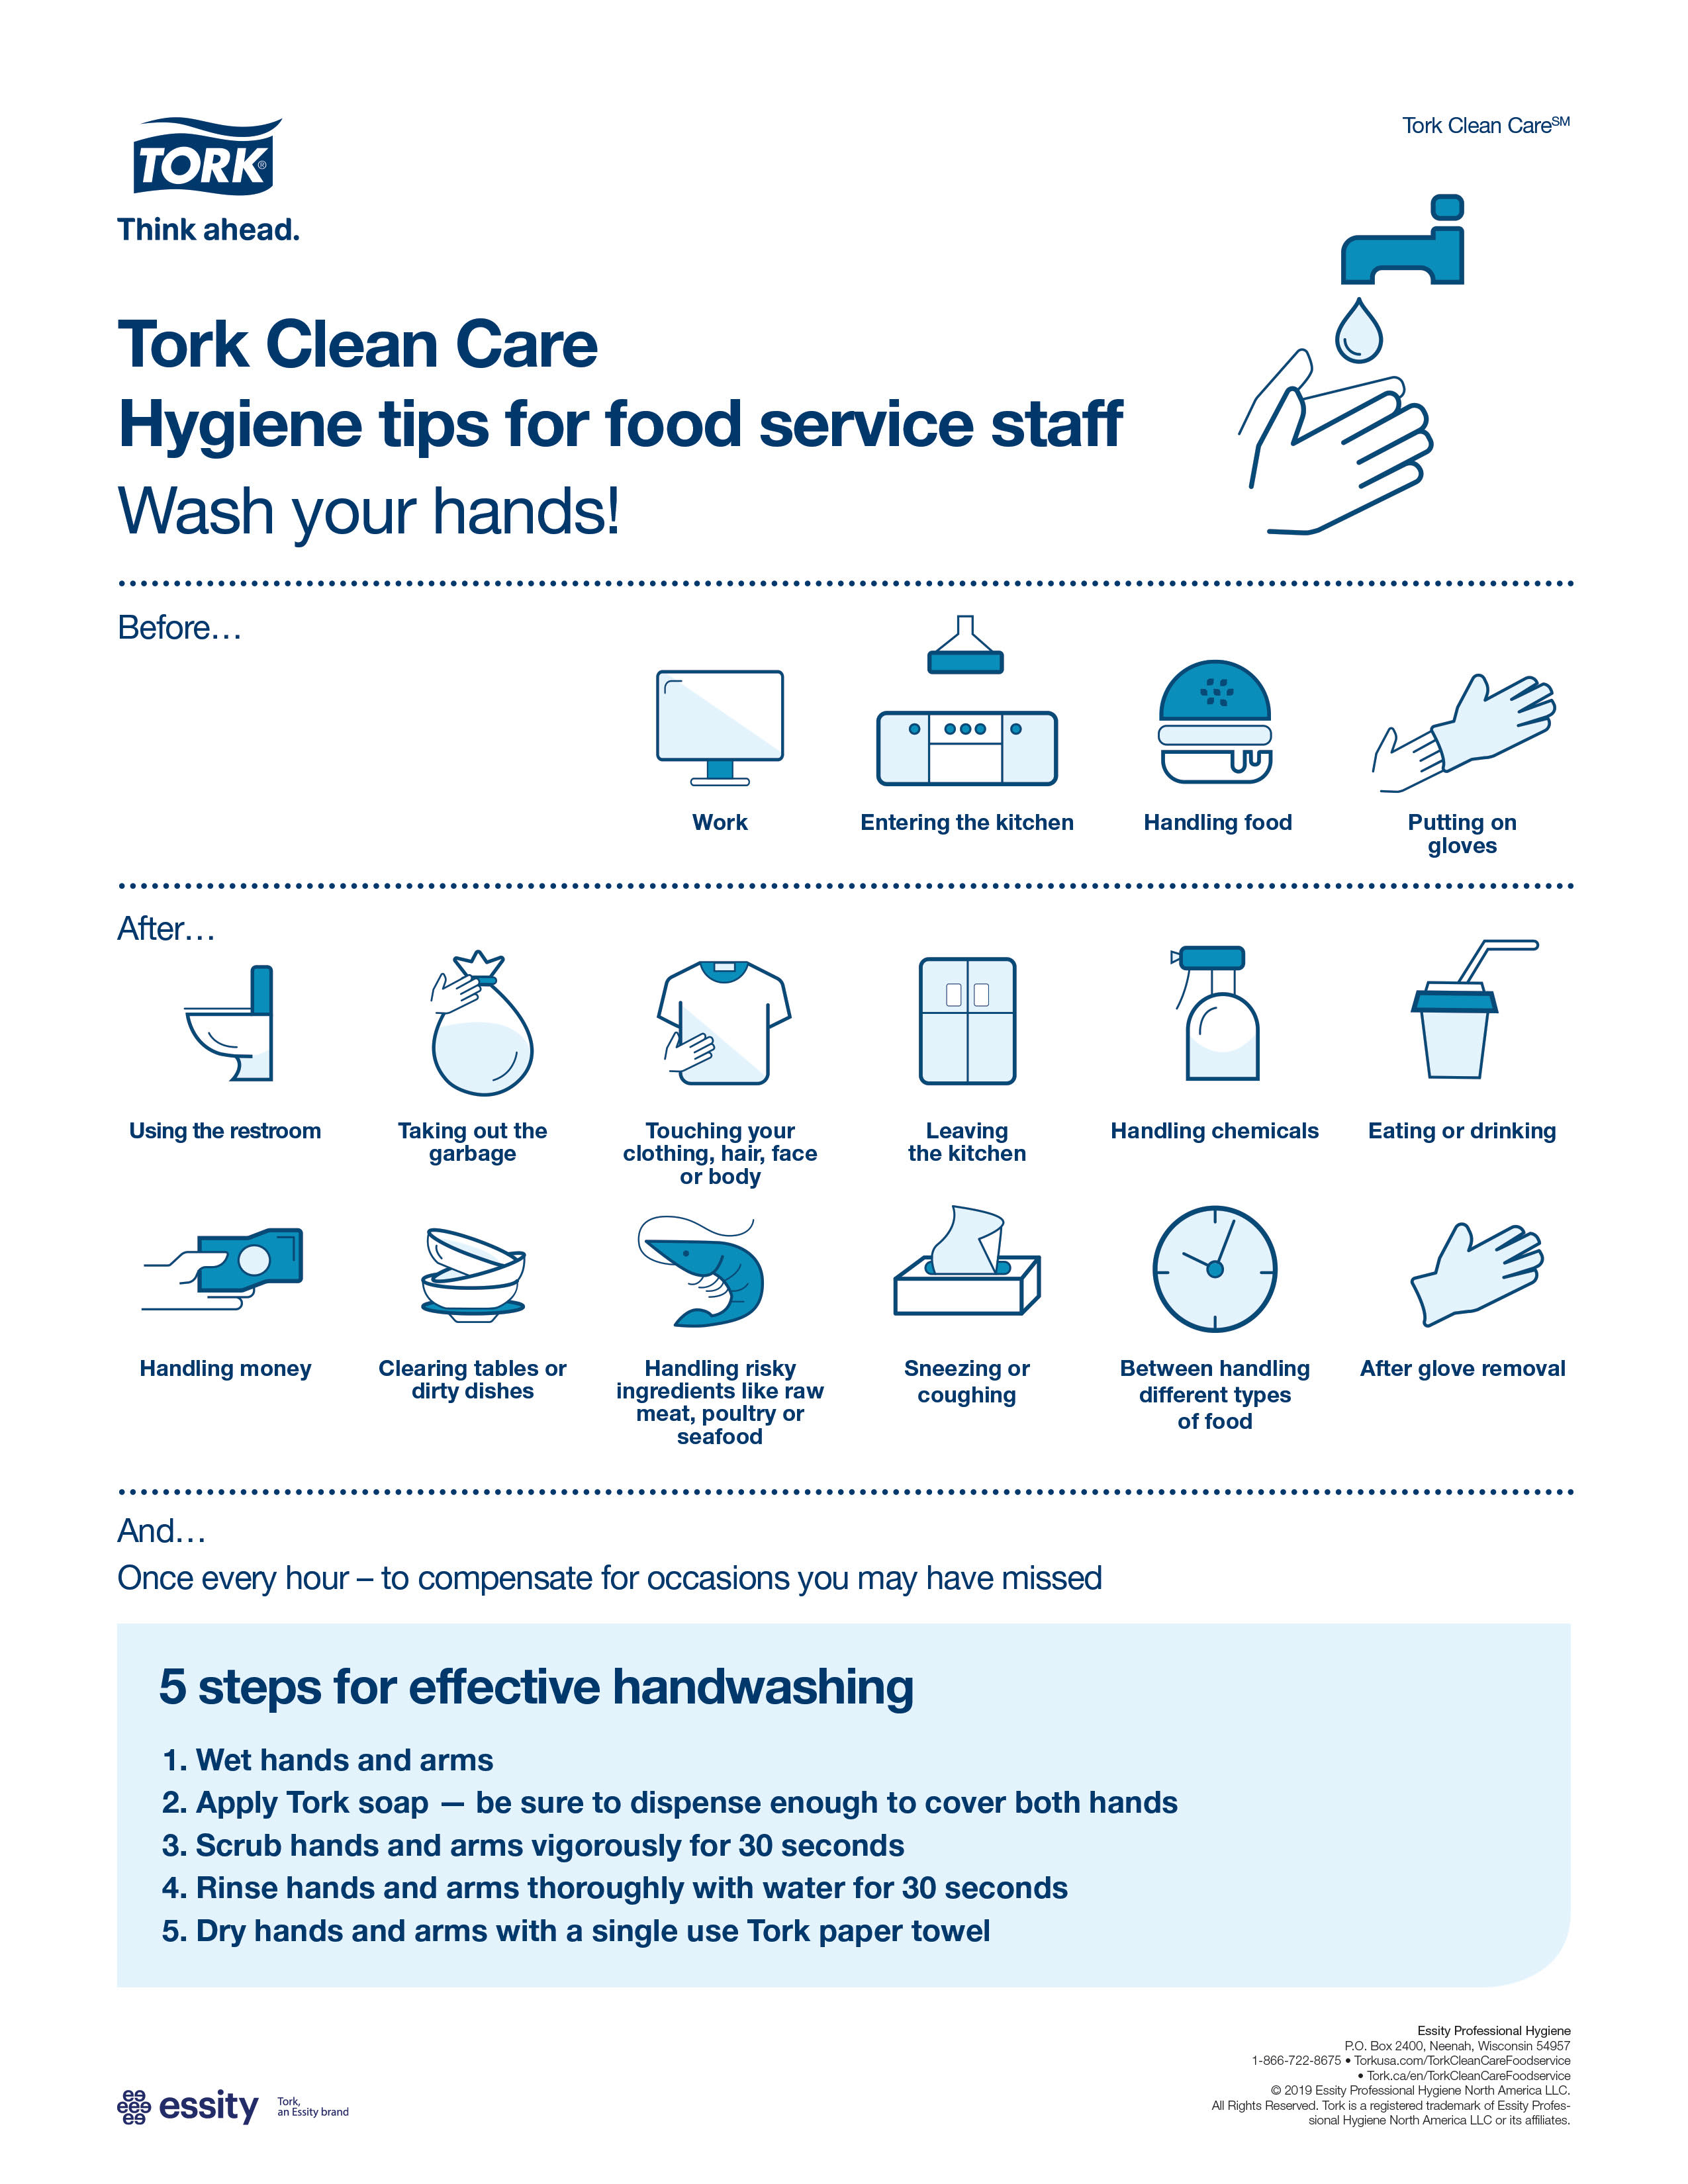 Hygiene tips for food service staff